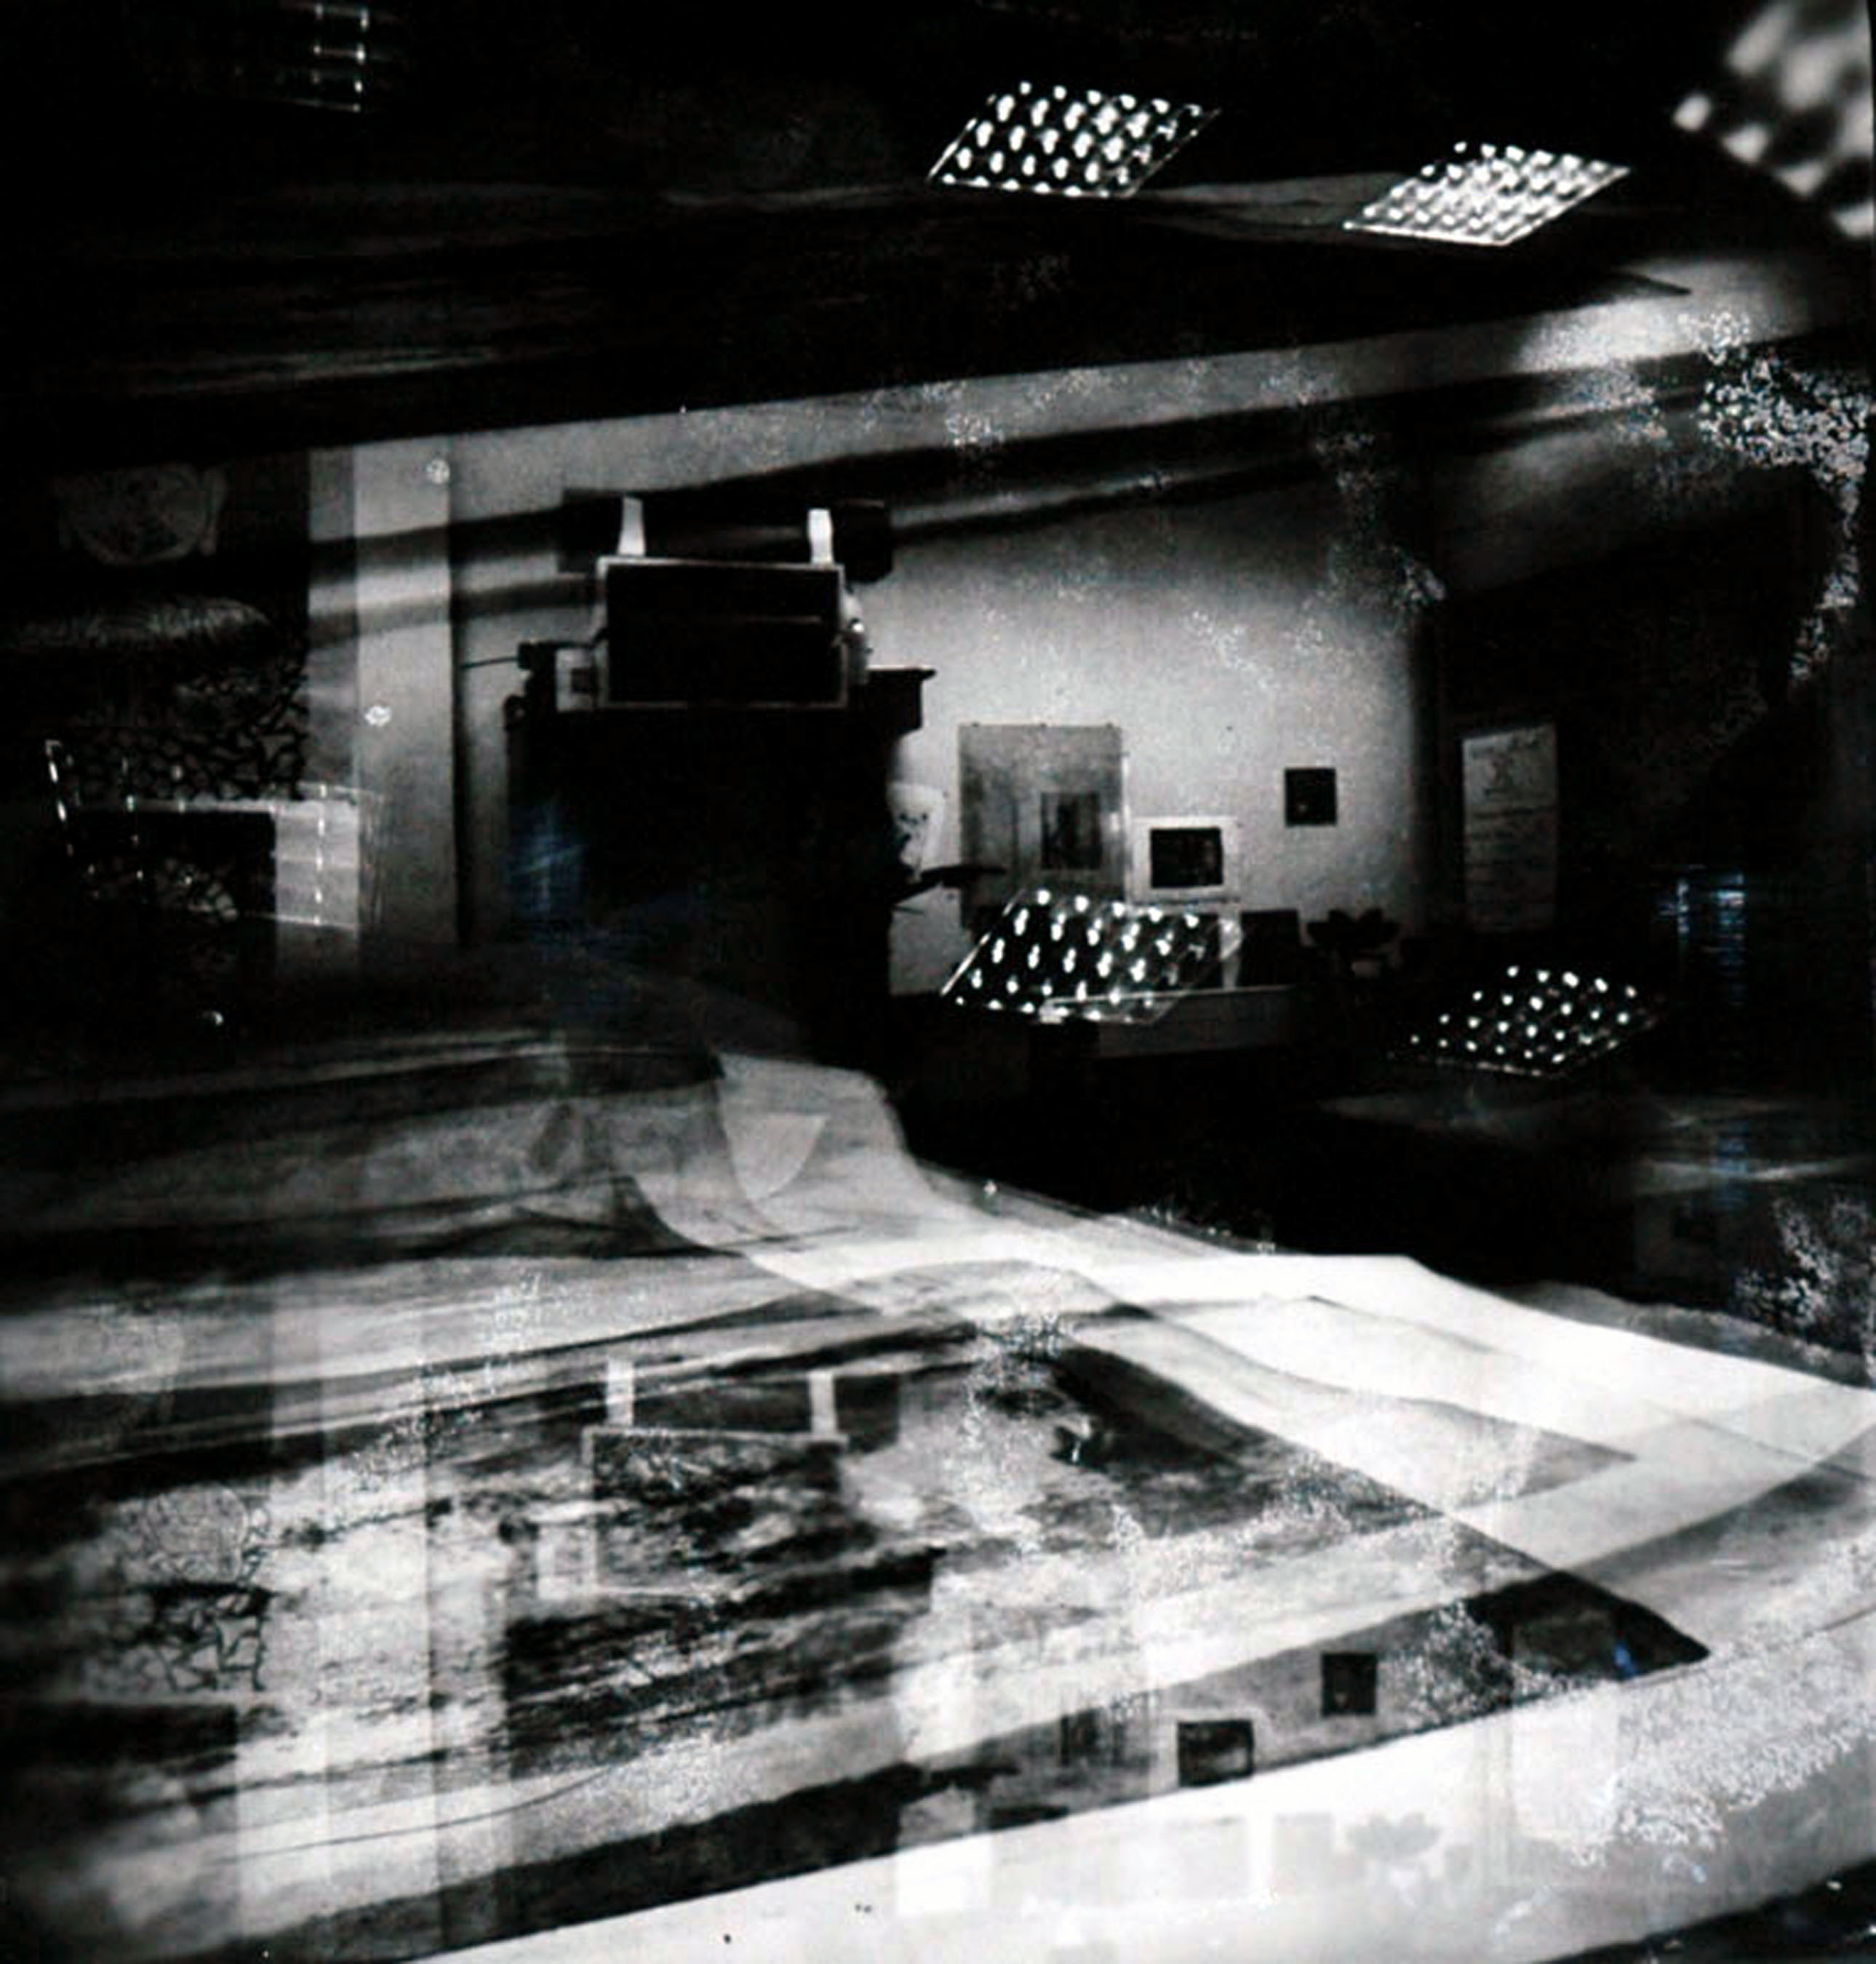 Studio pin hole photo